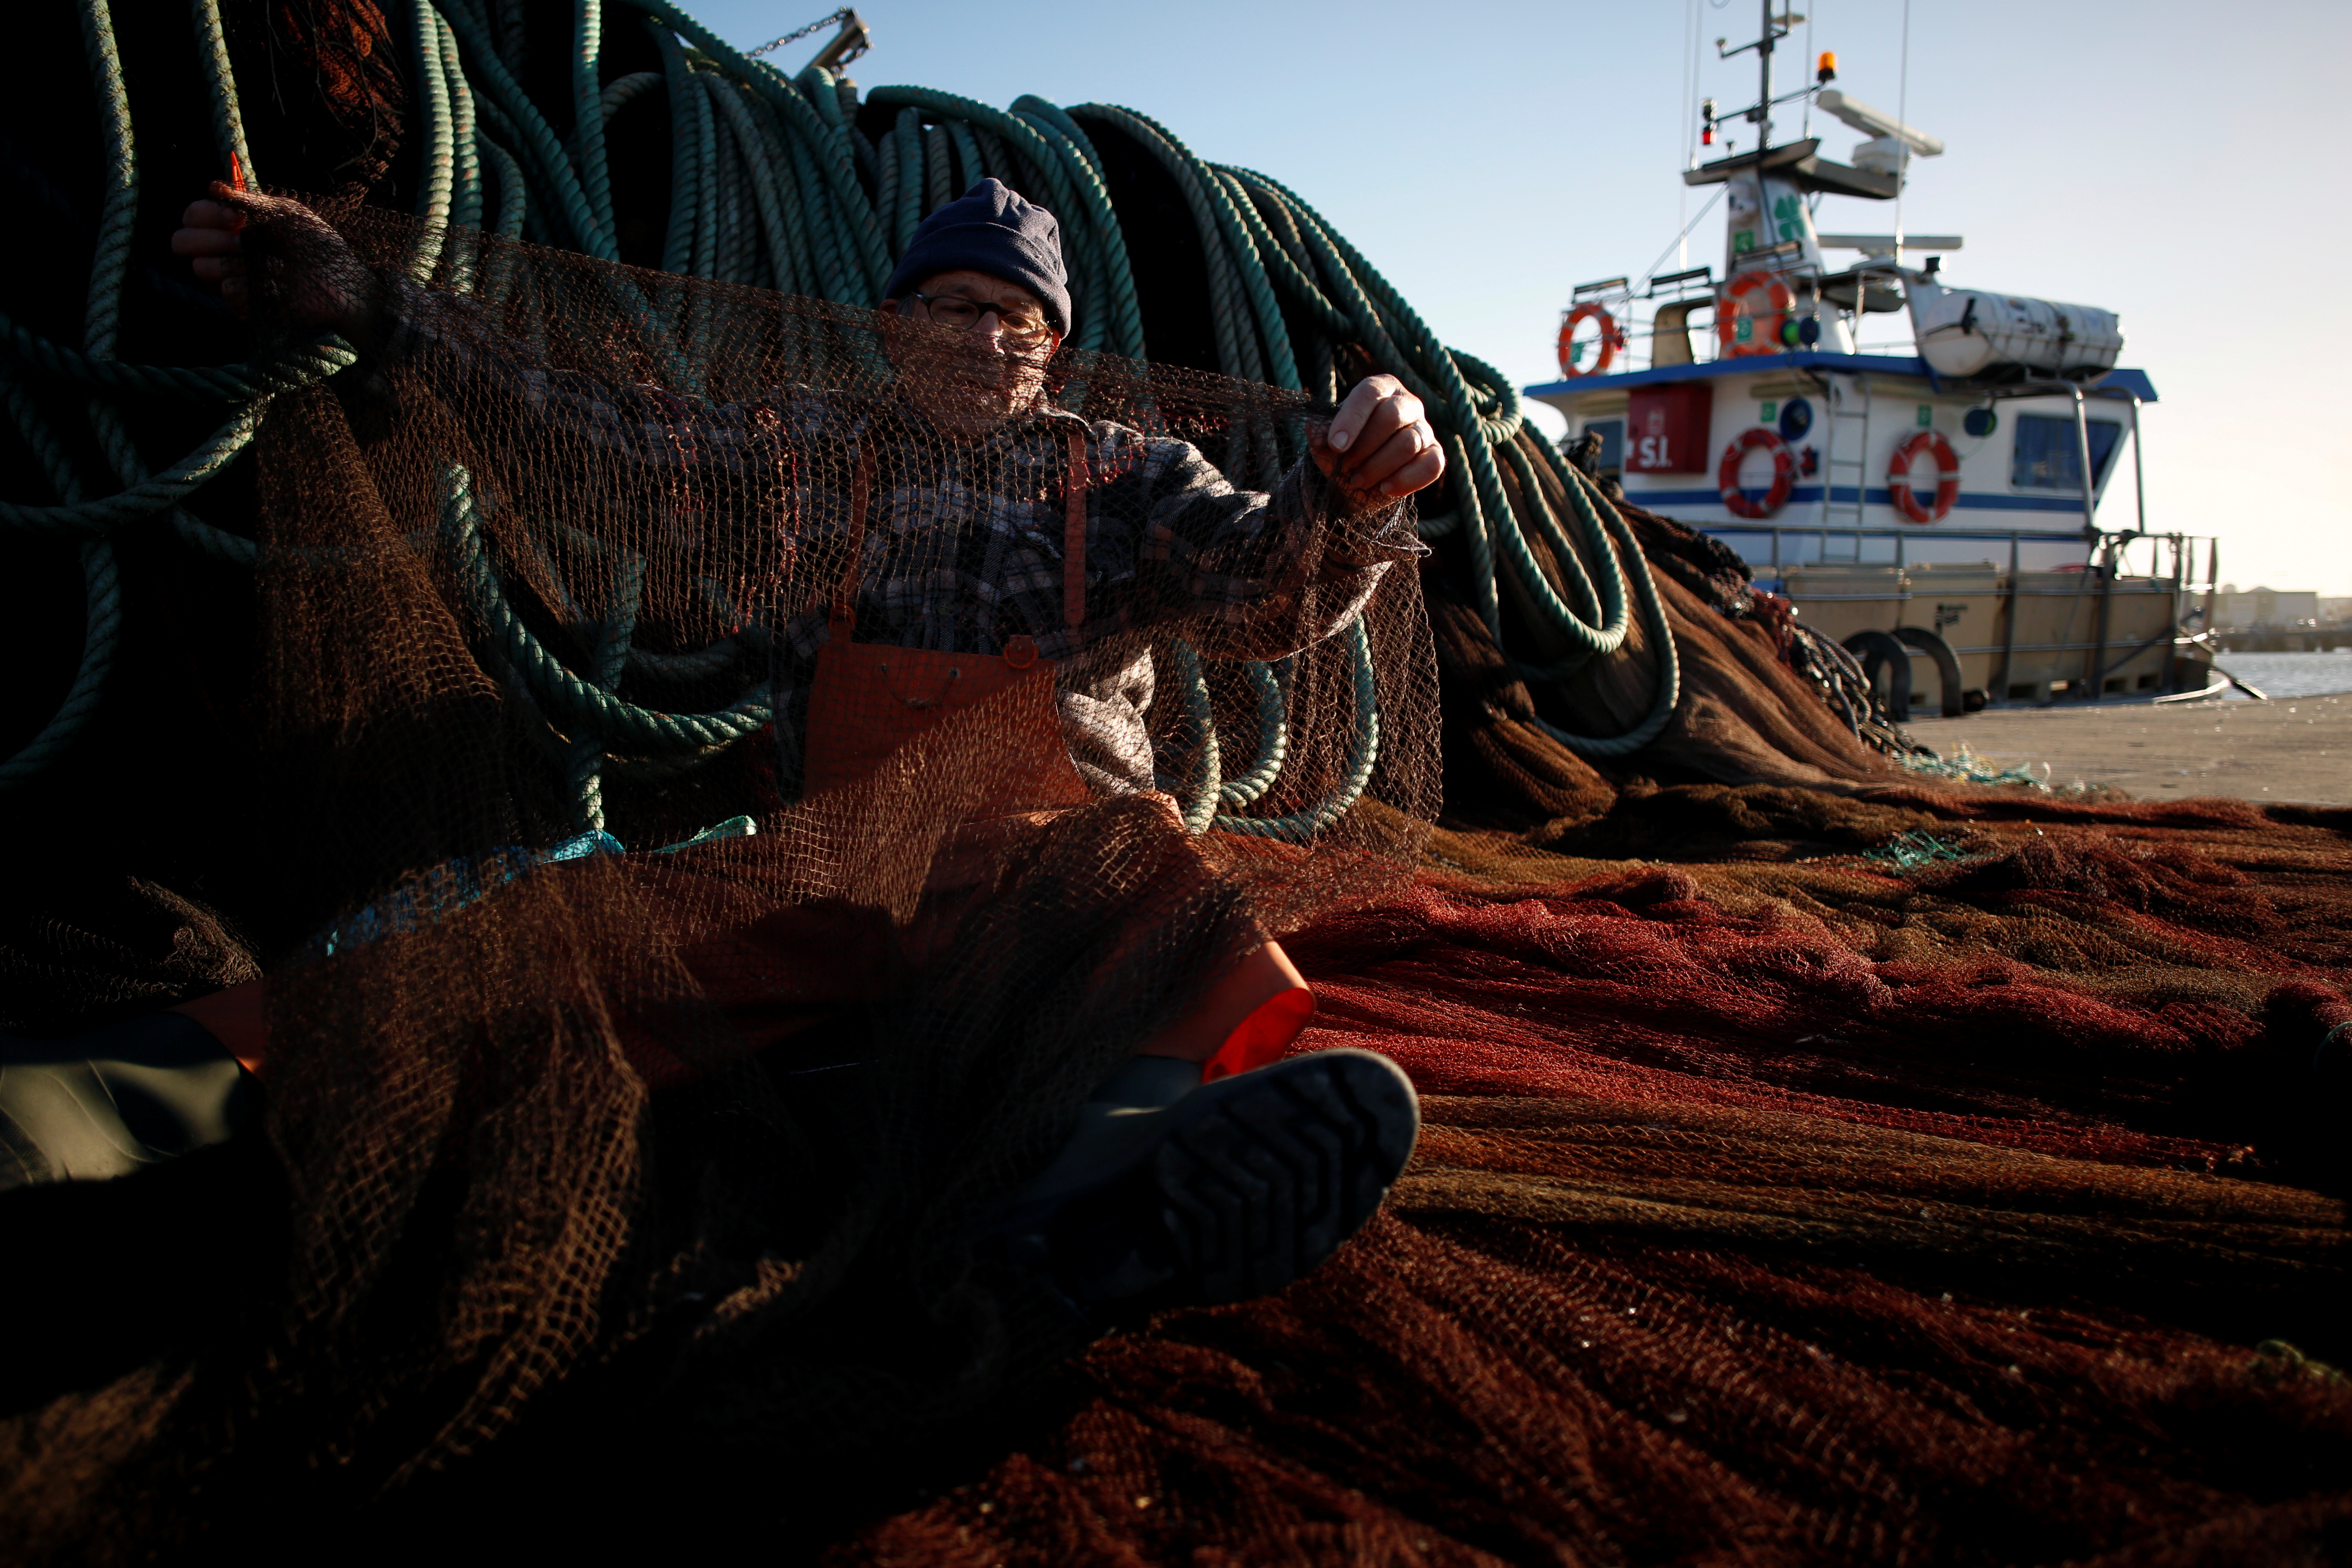 Fisherman Erbes Martins sews his net in the port of Peniche, Portugal, Feb. 6, 2018.